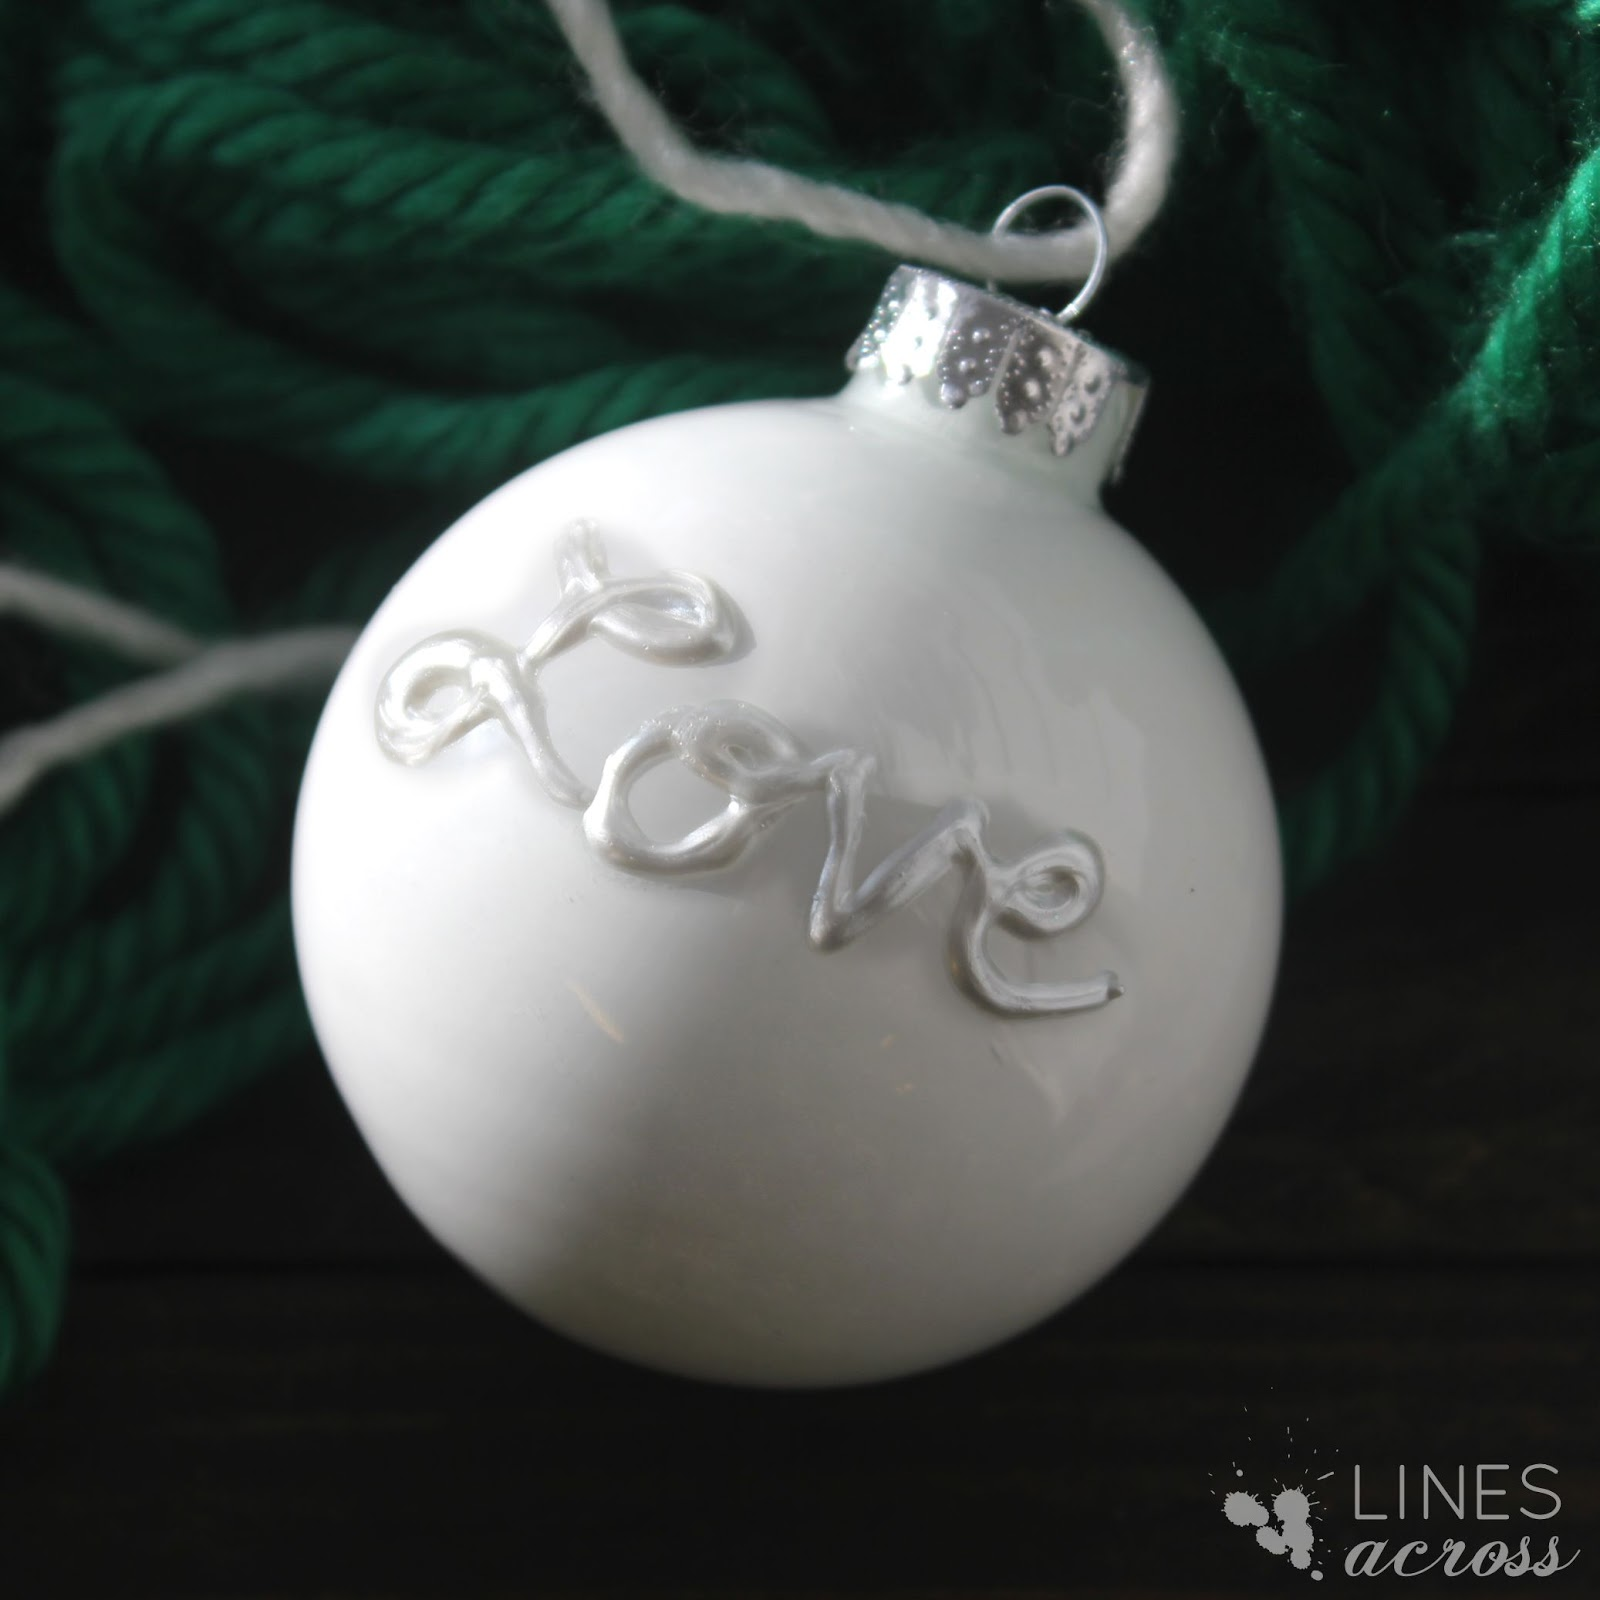 Outside ornaments -  Use Glittery Gold Paint To Coat The Inside Of The Ornament Then Use A Gold Paint Pen To Draw Shapes On The Outside Of The Ornament